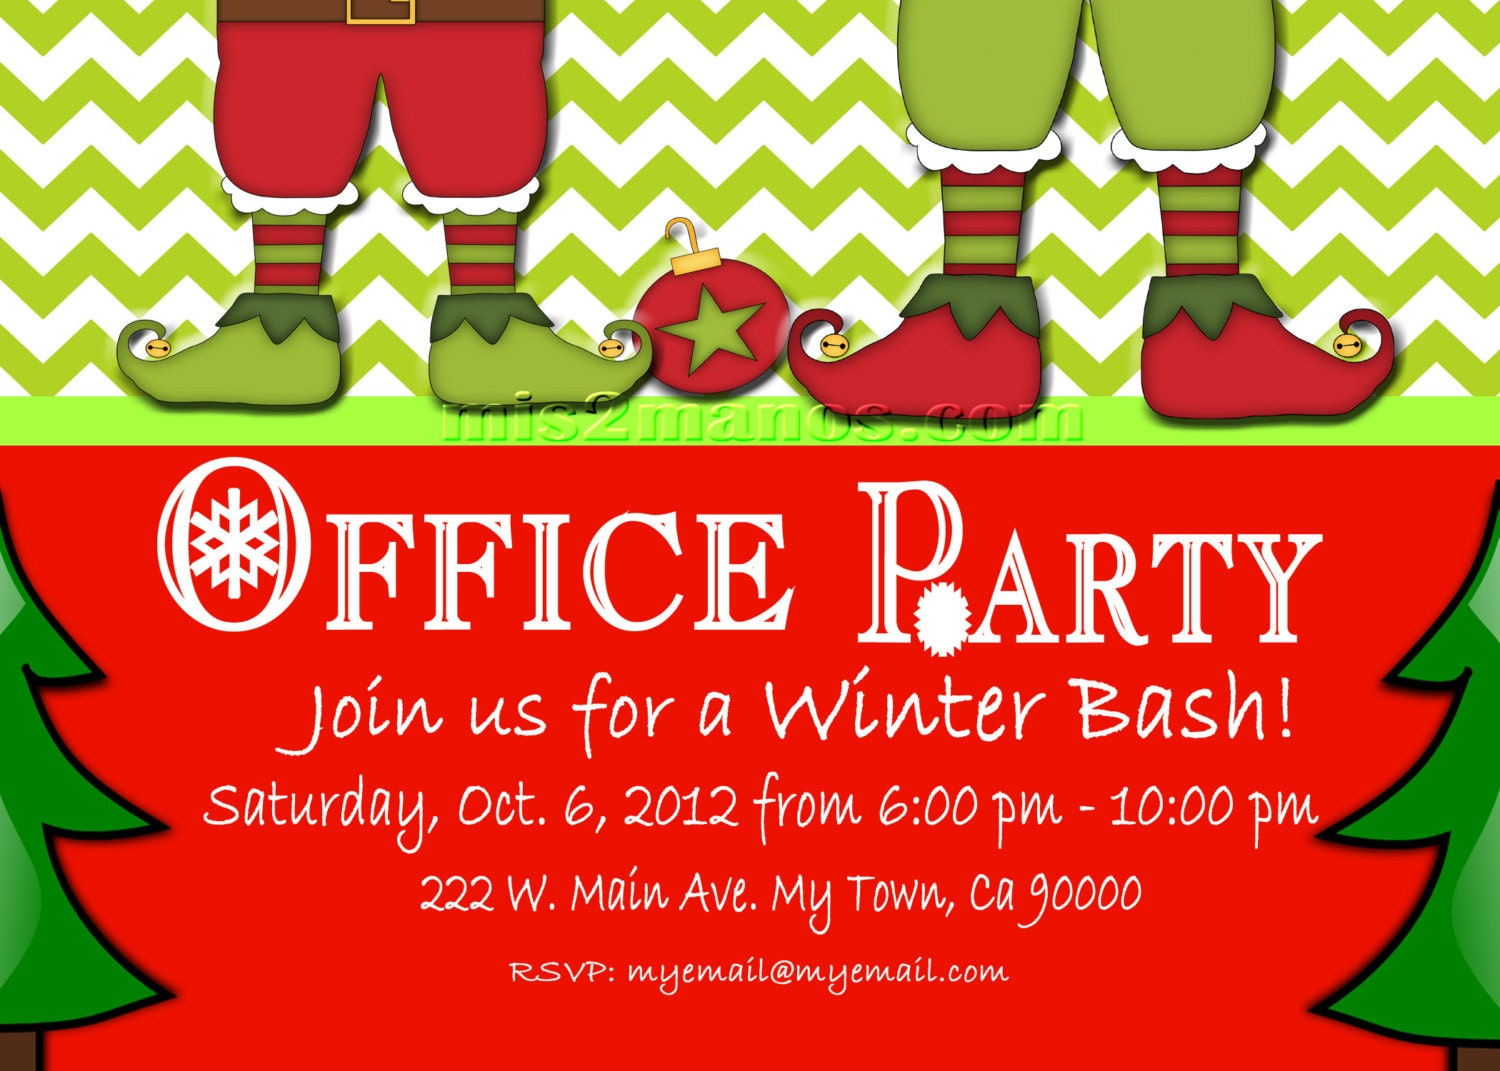 Nice Christmas Office Party Invitation Motif - Invitations and ...